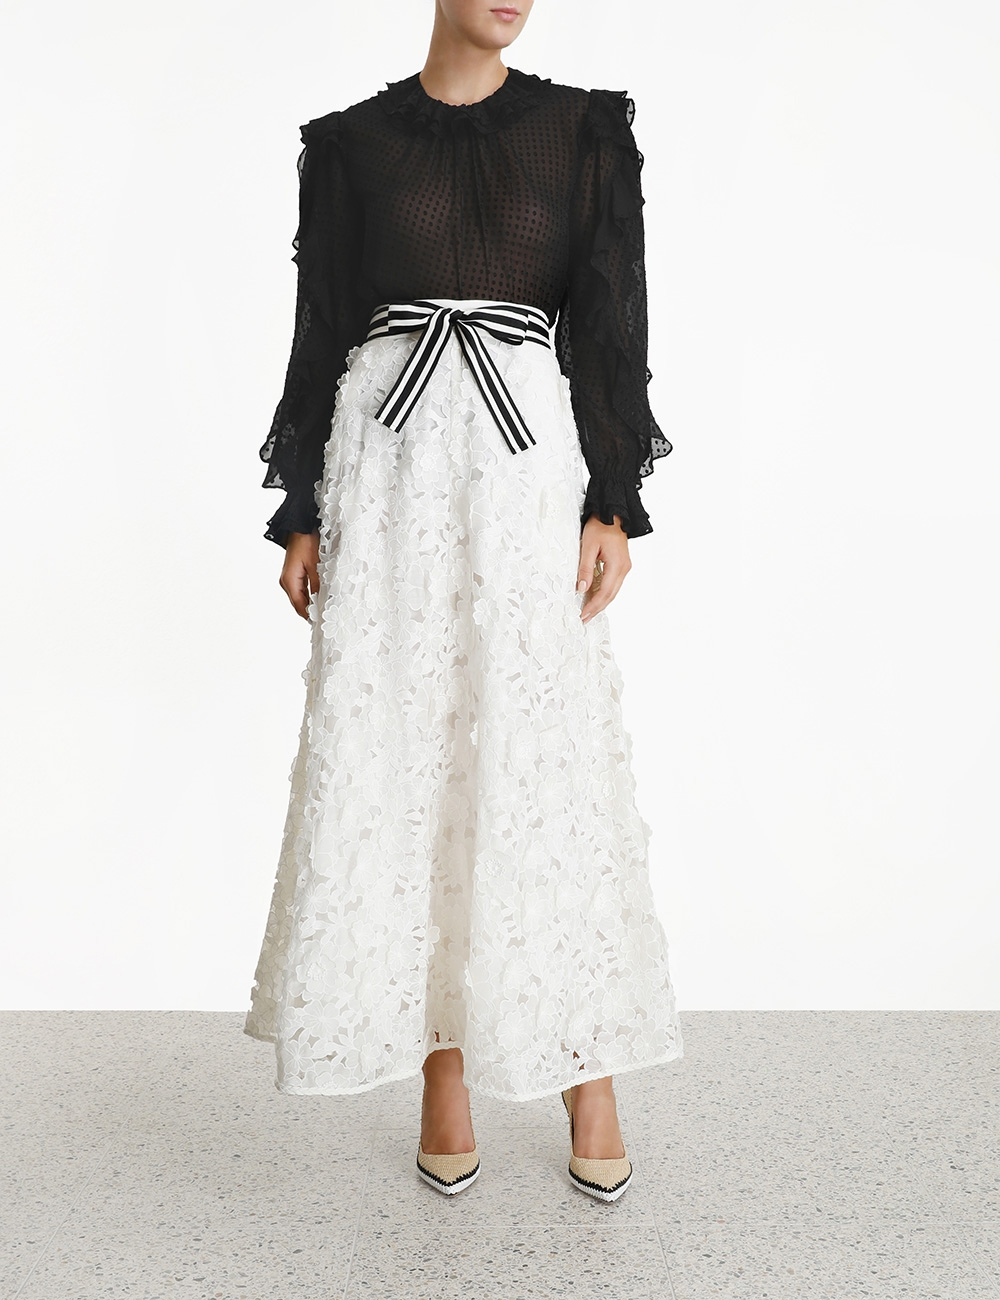 Super Eight Lift Off Skirt